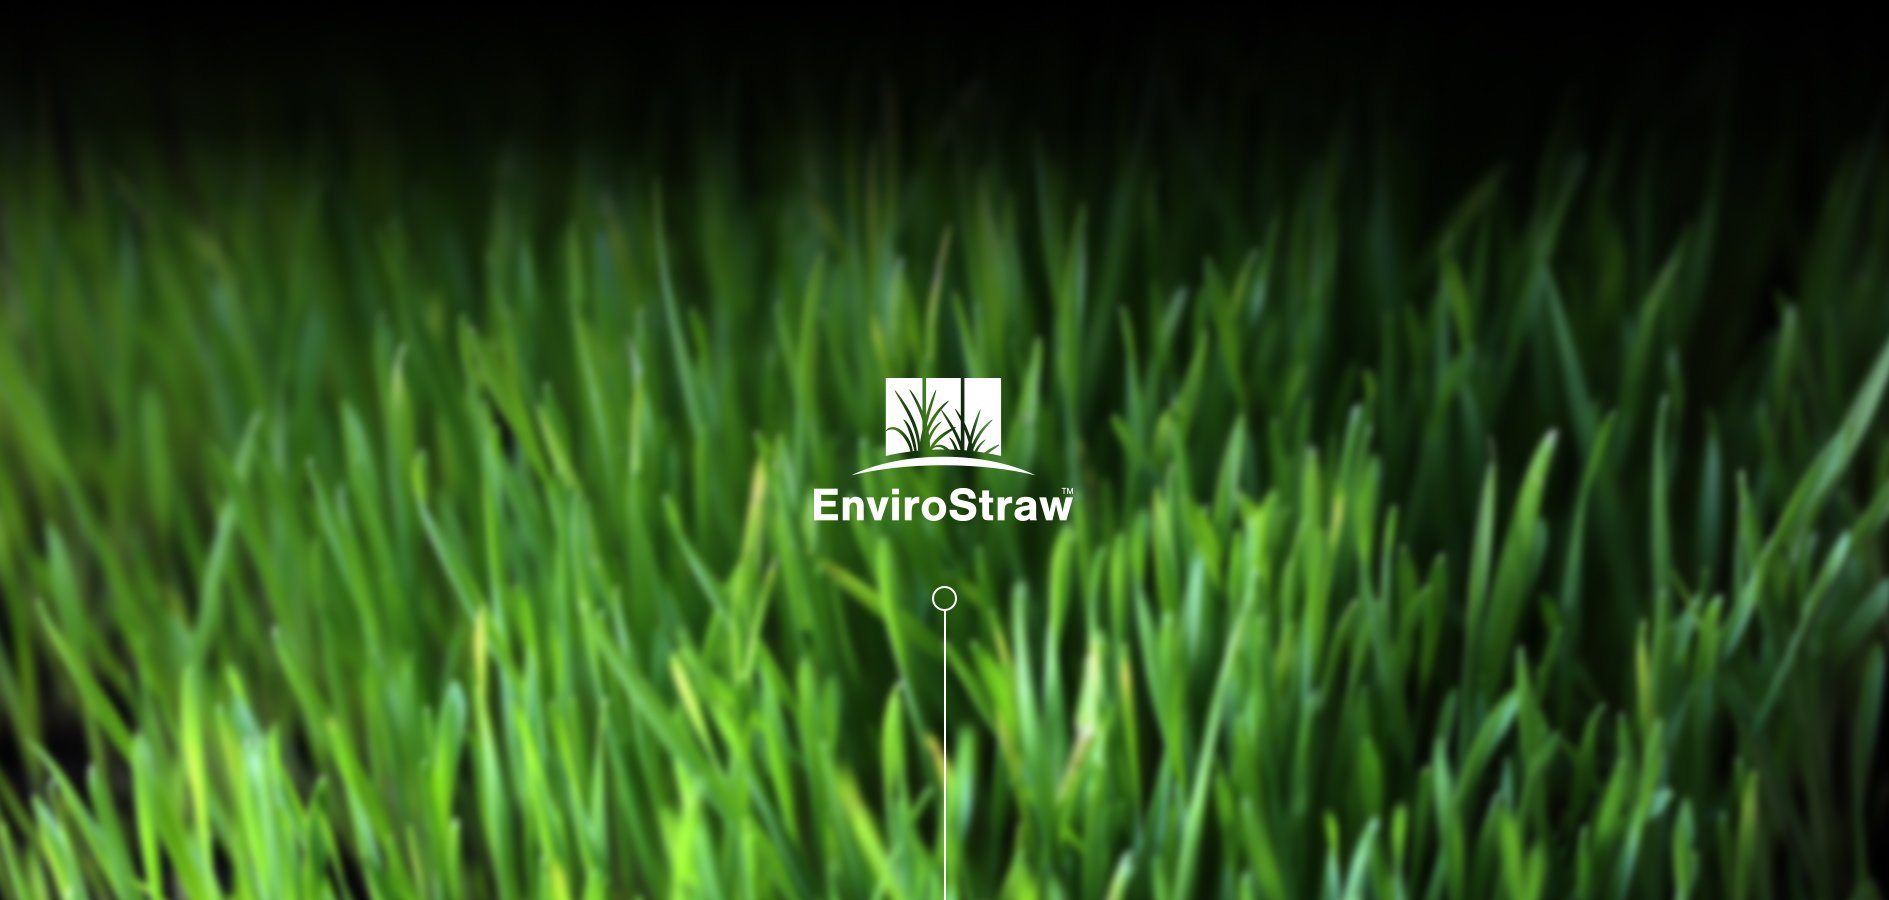 Graphic Design for Brand for Envirostraw by Sketch Corp.